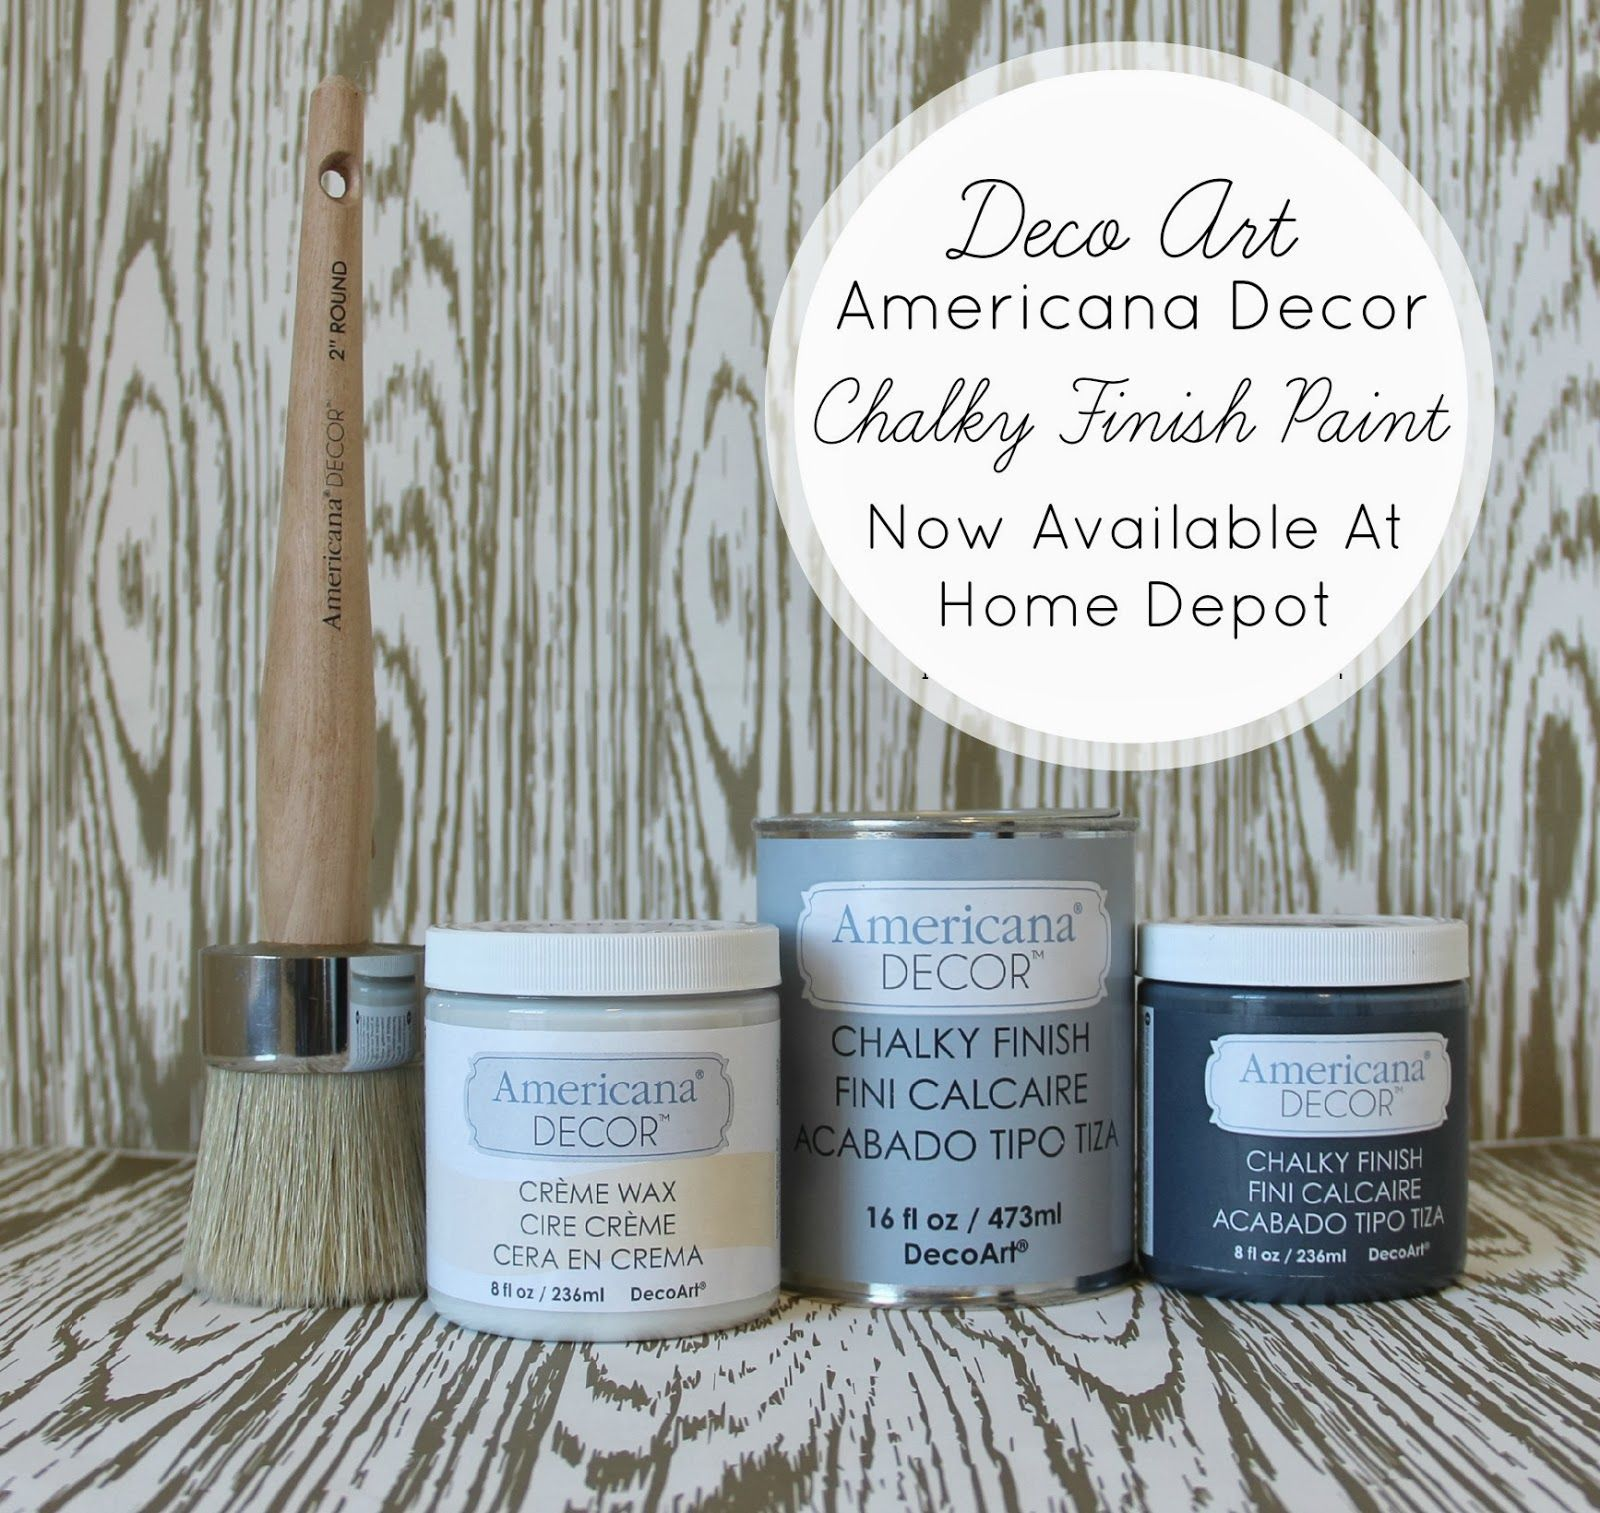 Americana Decor Chalky Finish Americana Decor Chalky Finish Paint Tutorial The Funky Junk Shop